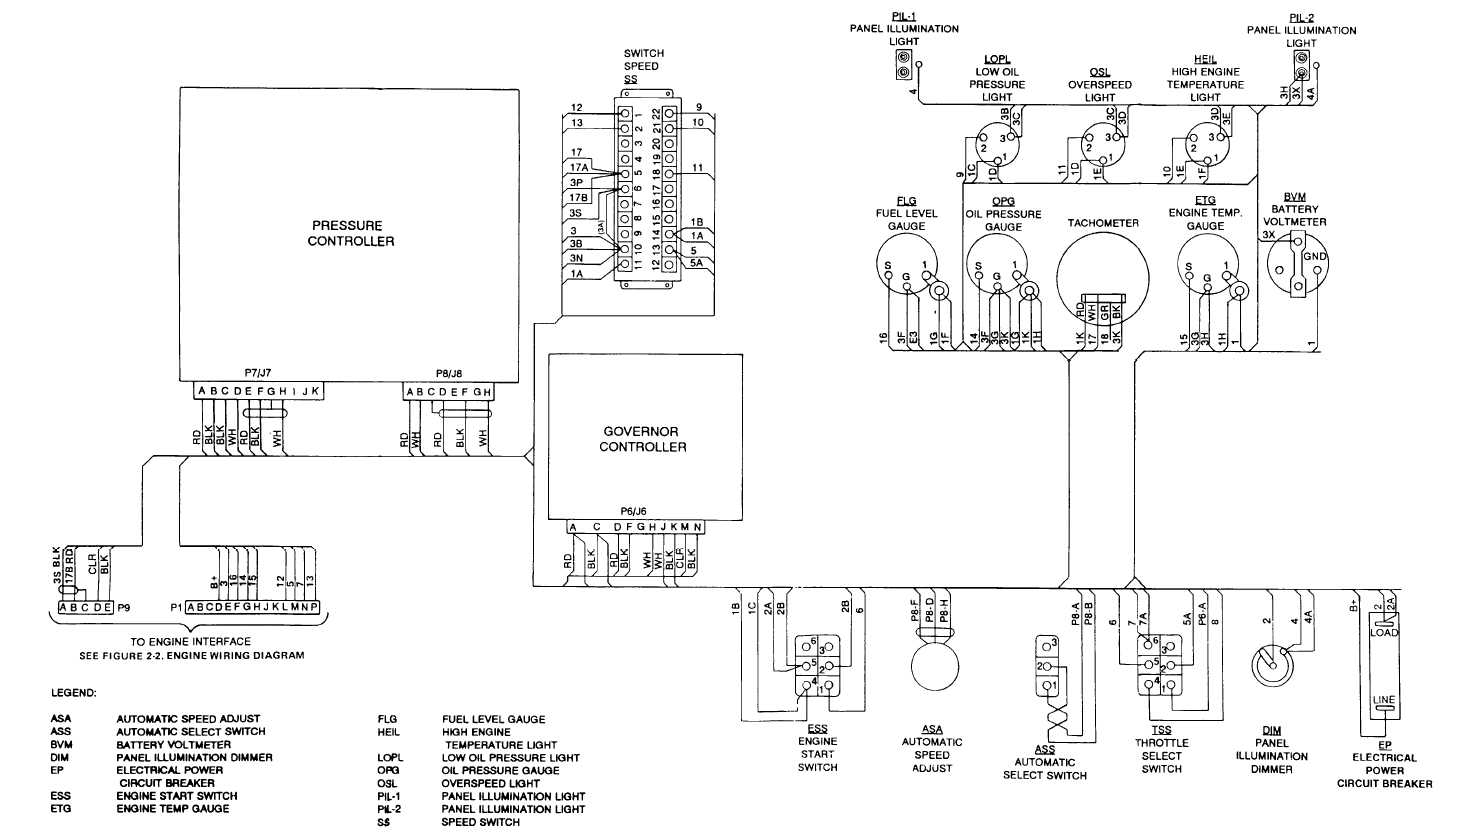 TM 10 4320 315 24_18_1 figure 2 1 control panel wiring diagram (sheet 1 of 4) control panel diagram at gsmx.co